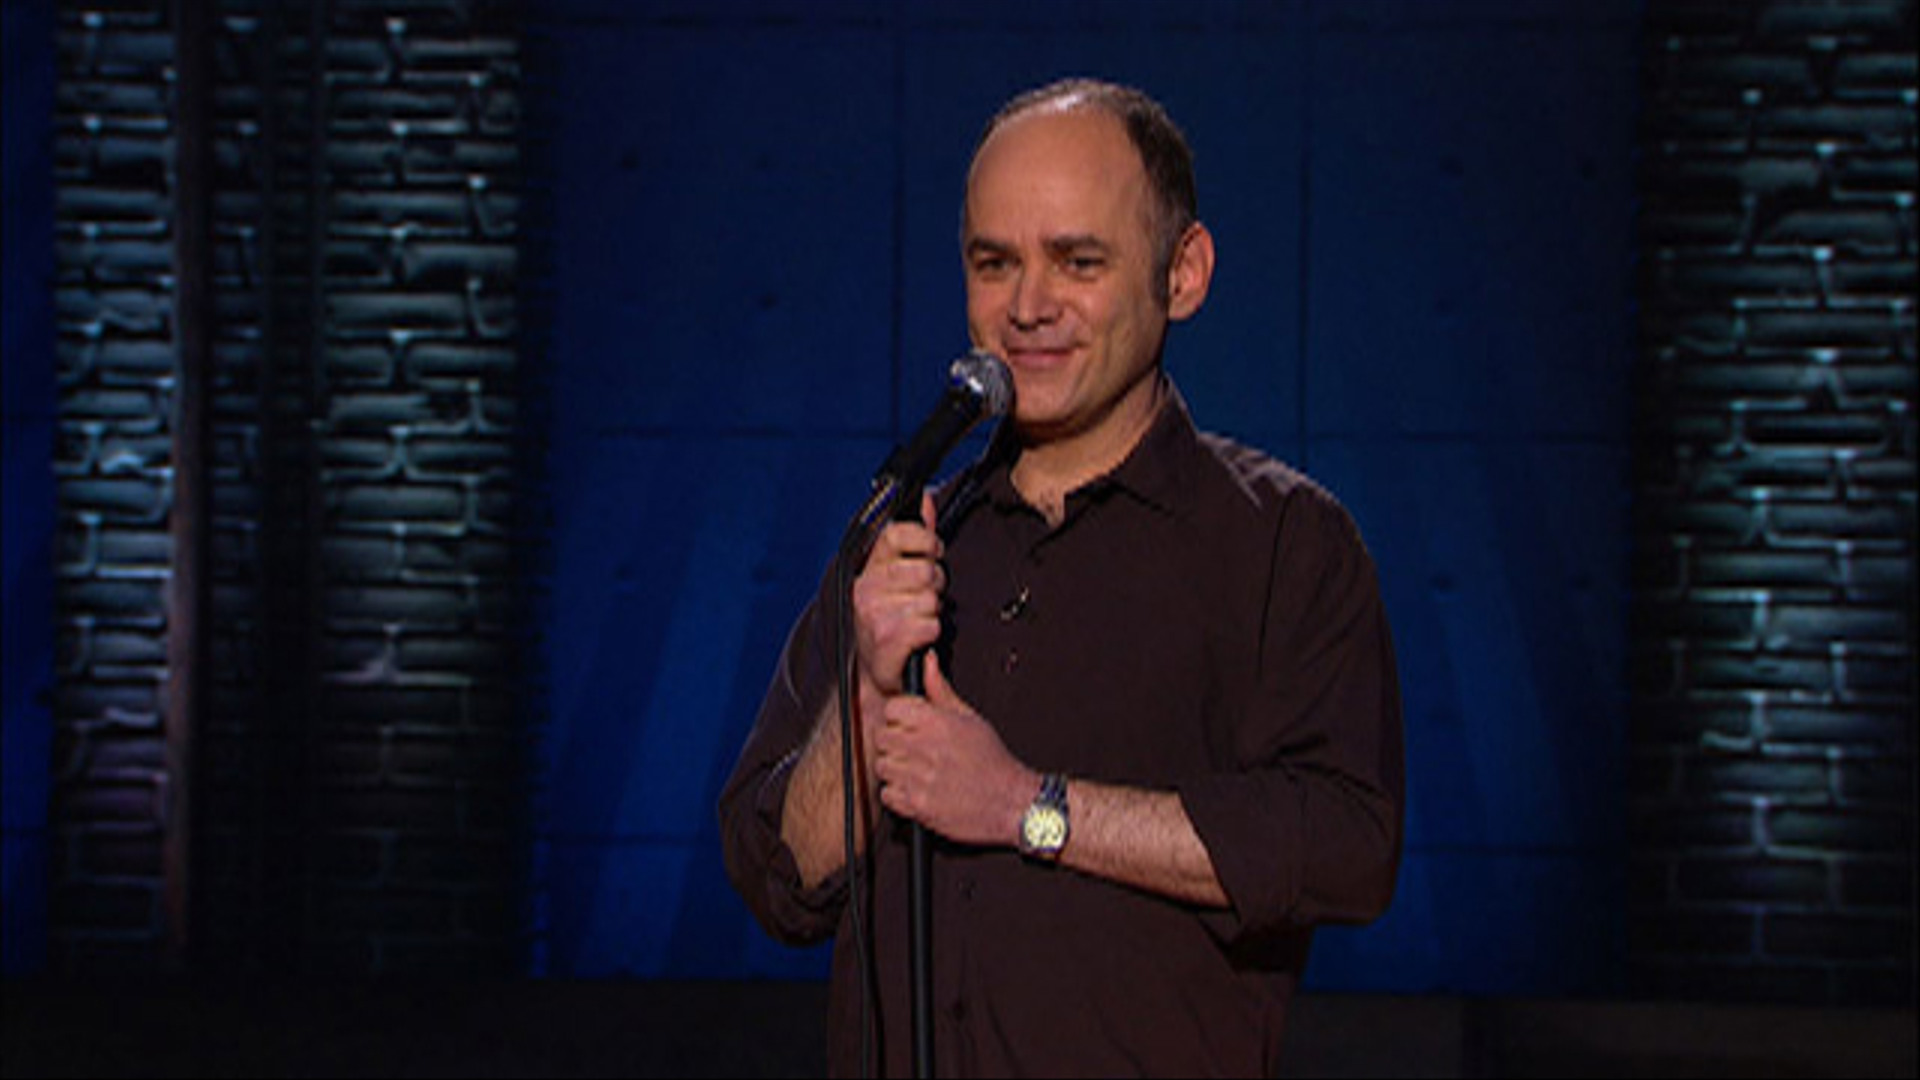 Todd Barry - Hailing a Taxi